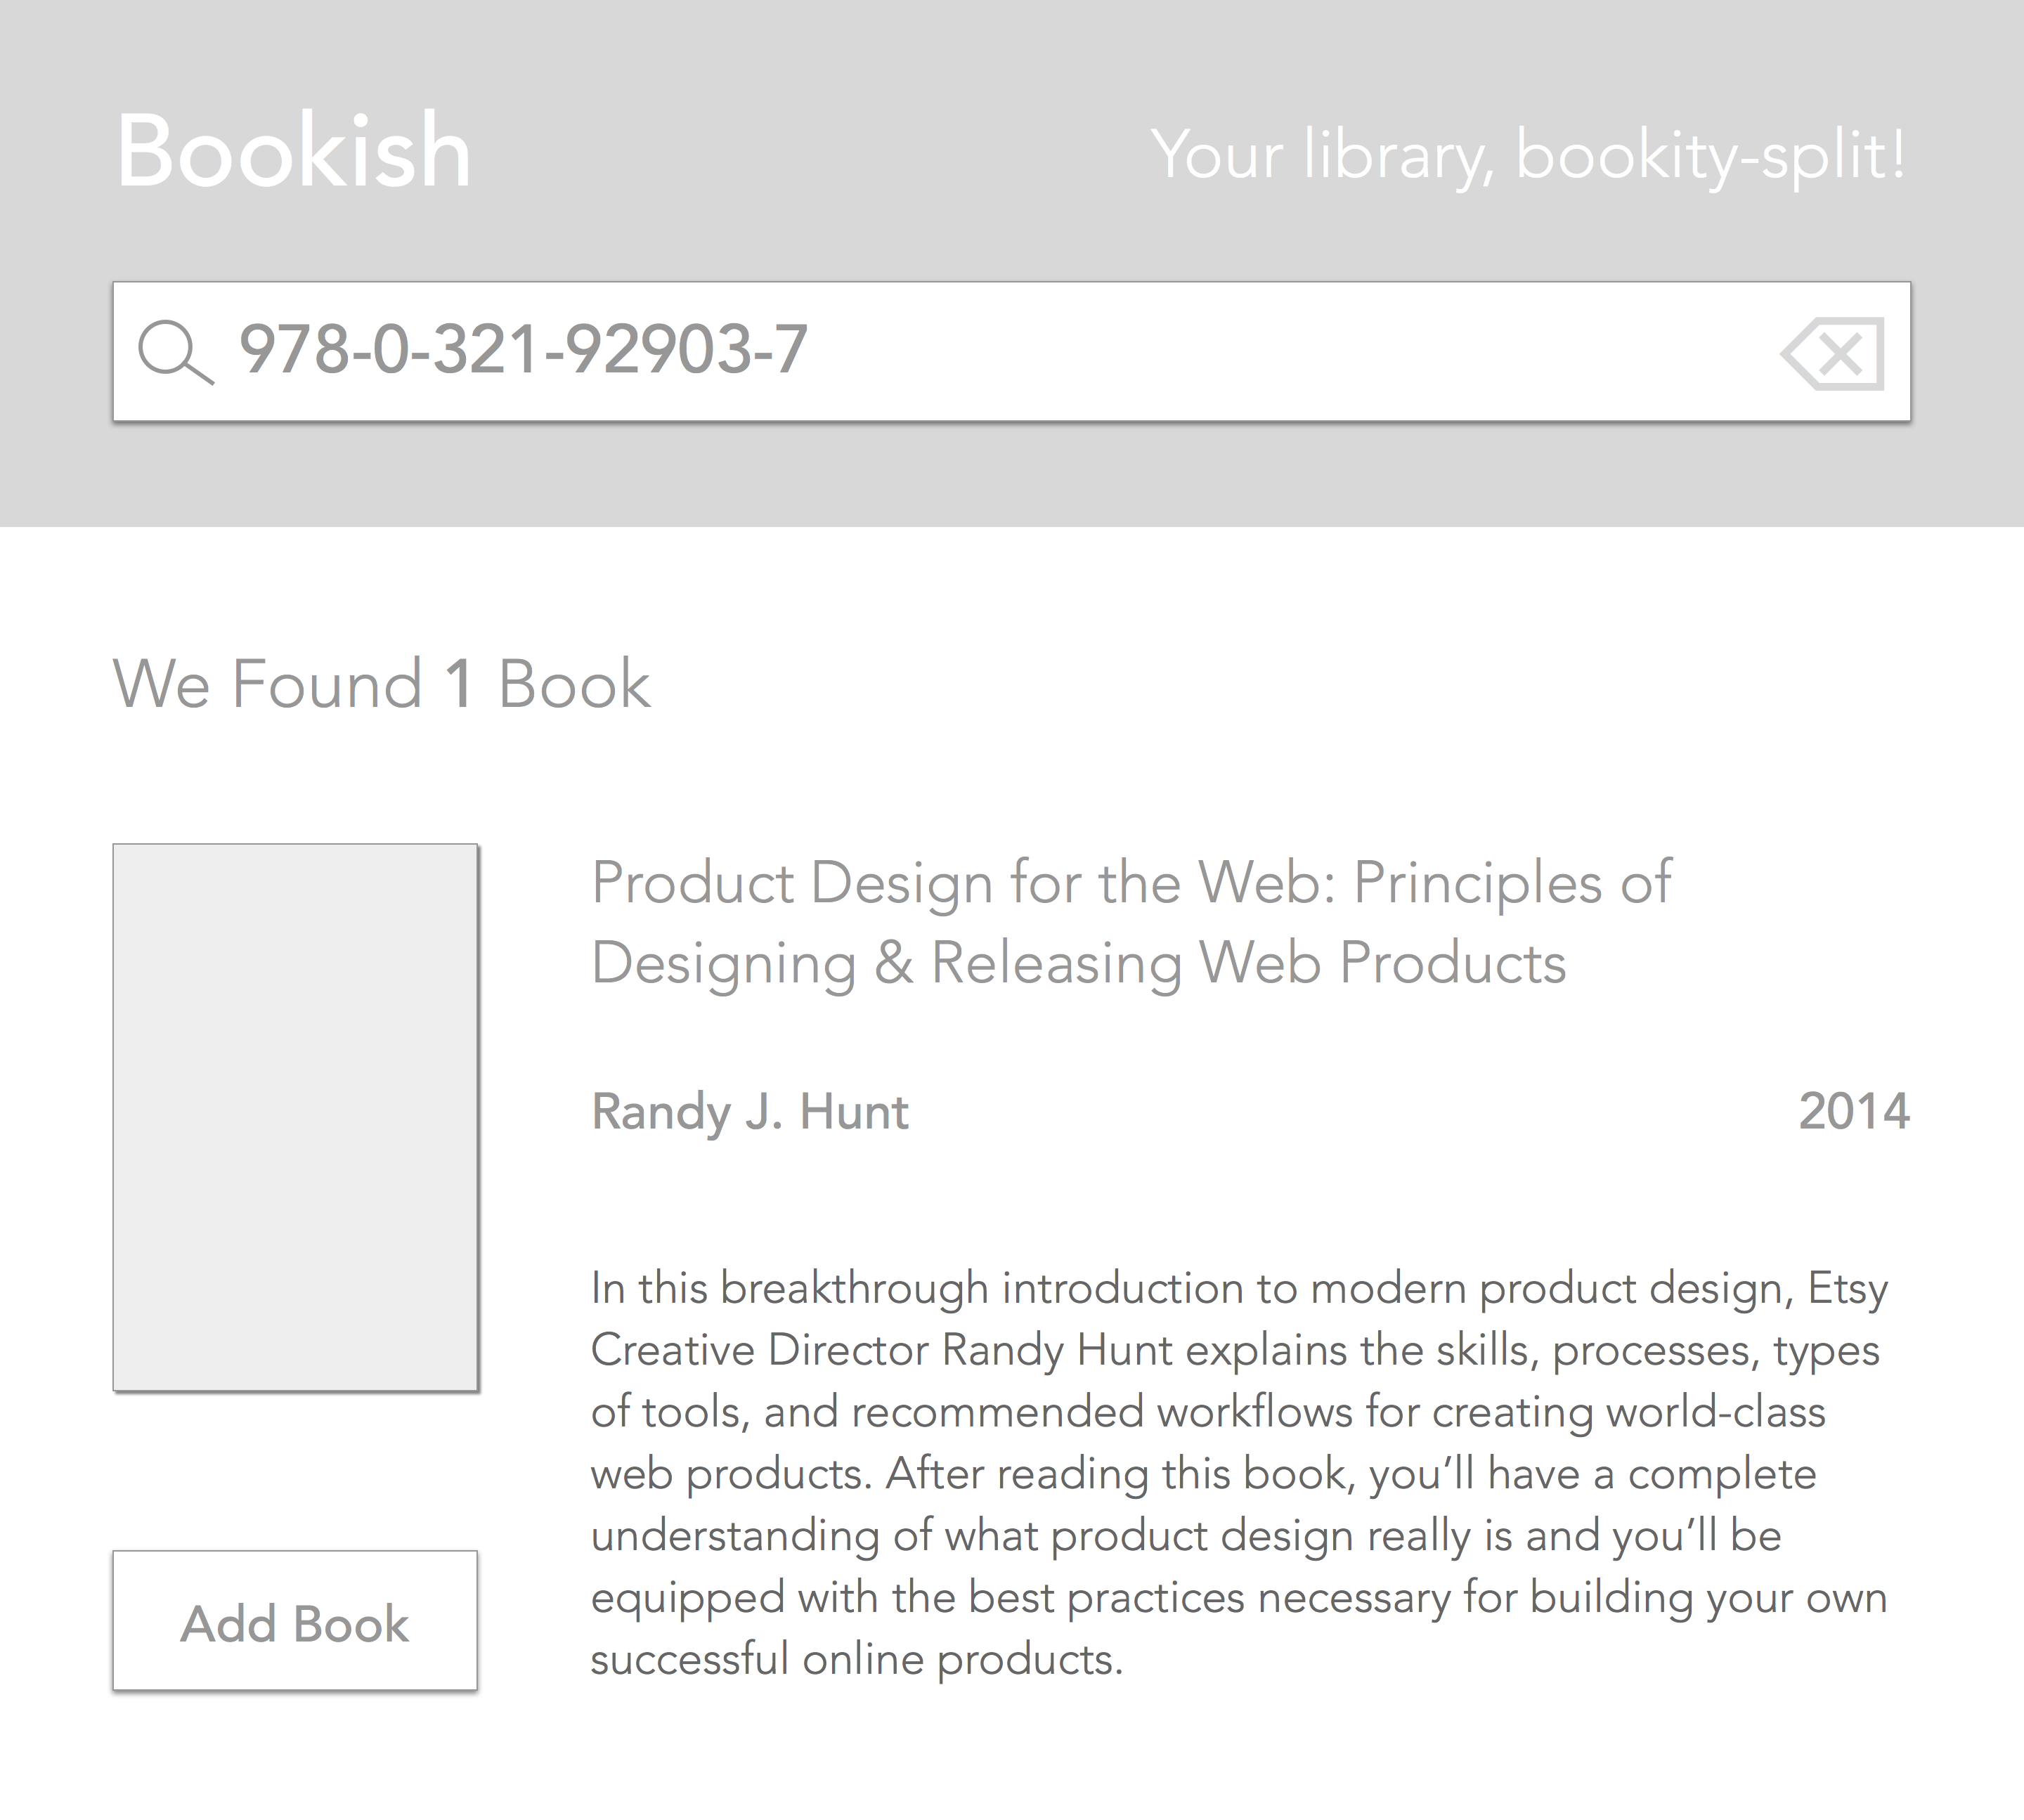 Book detail screen wireframe.